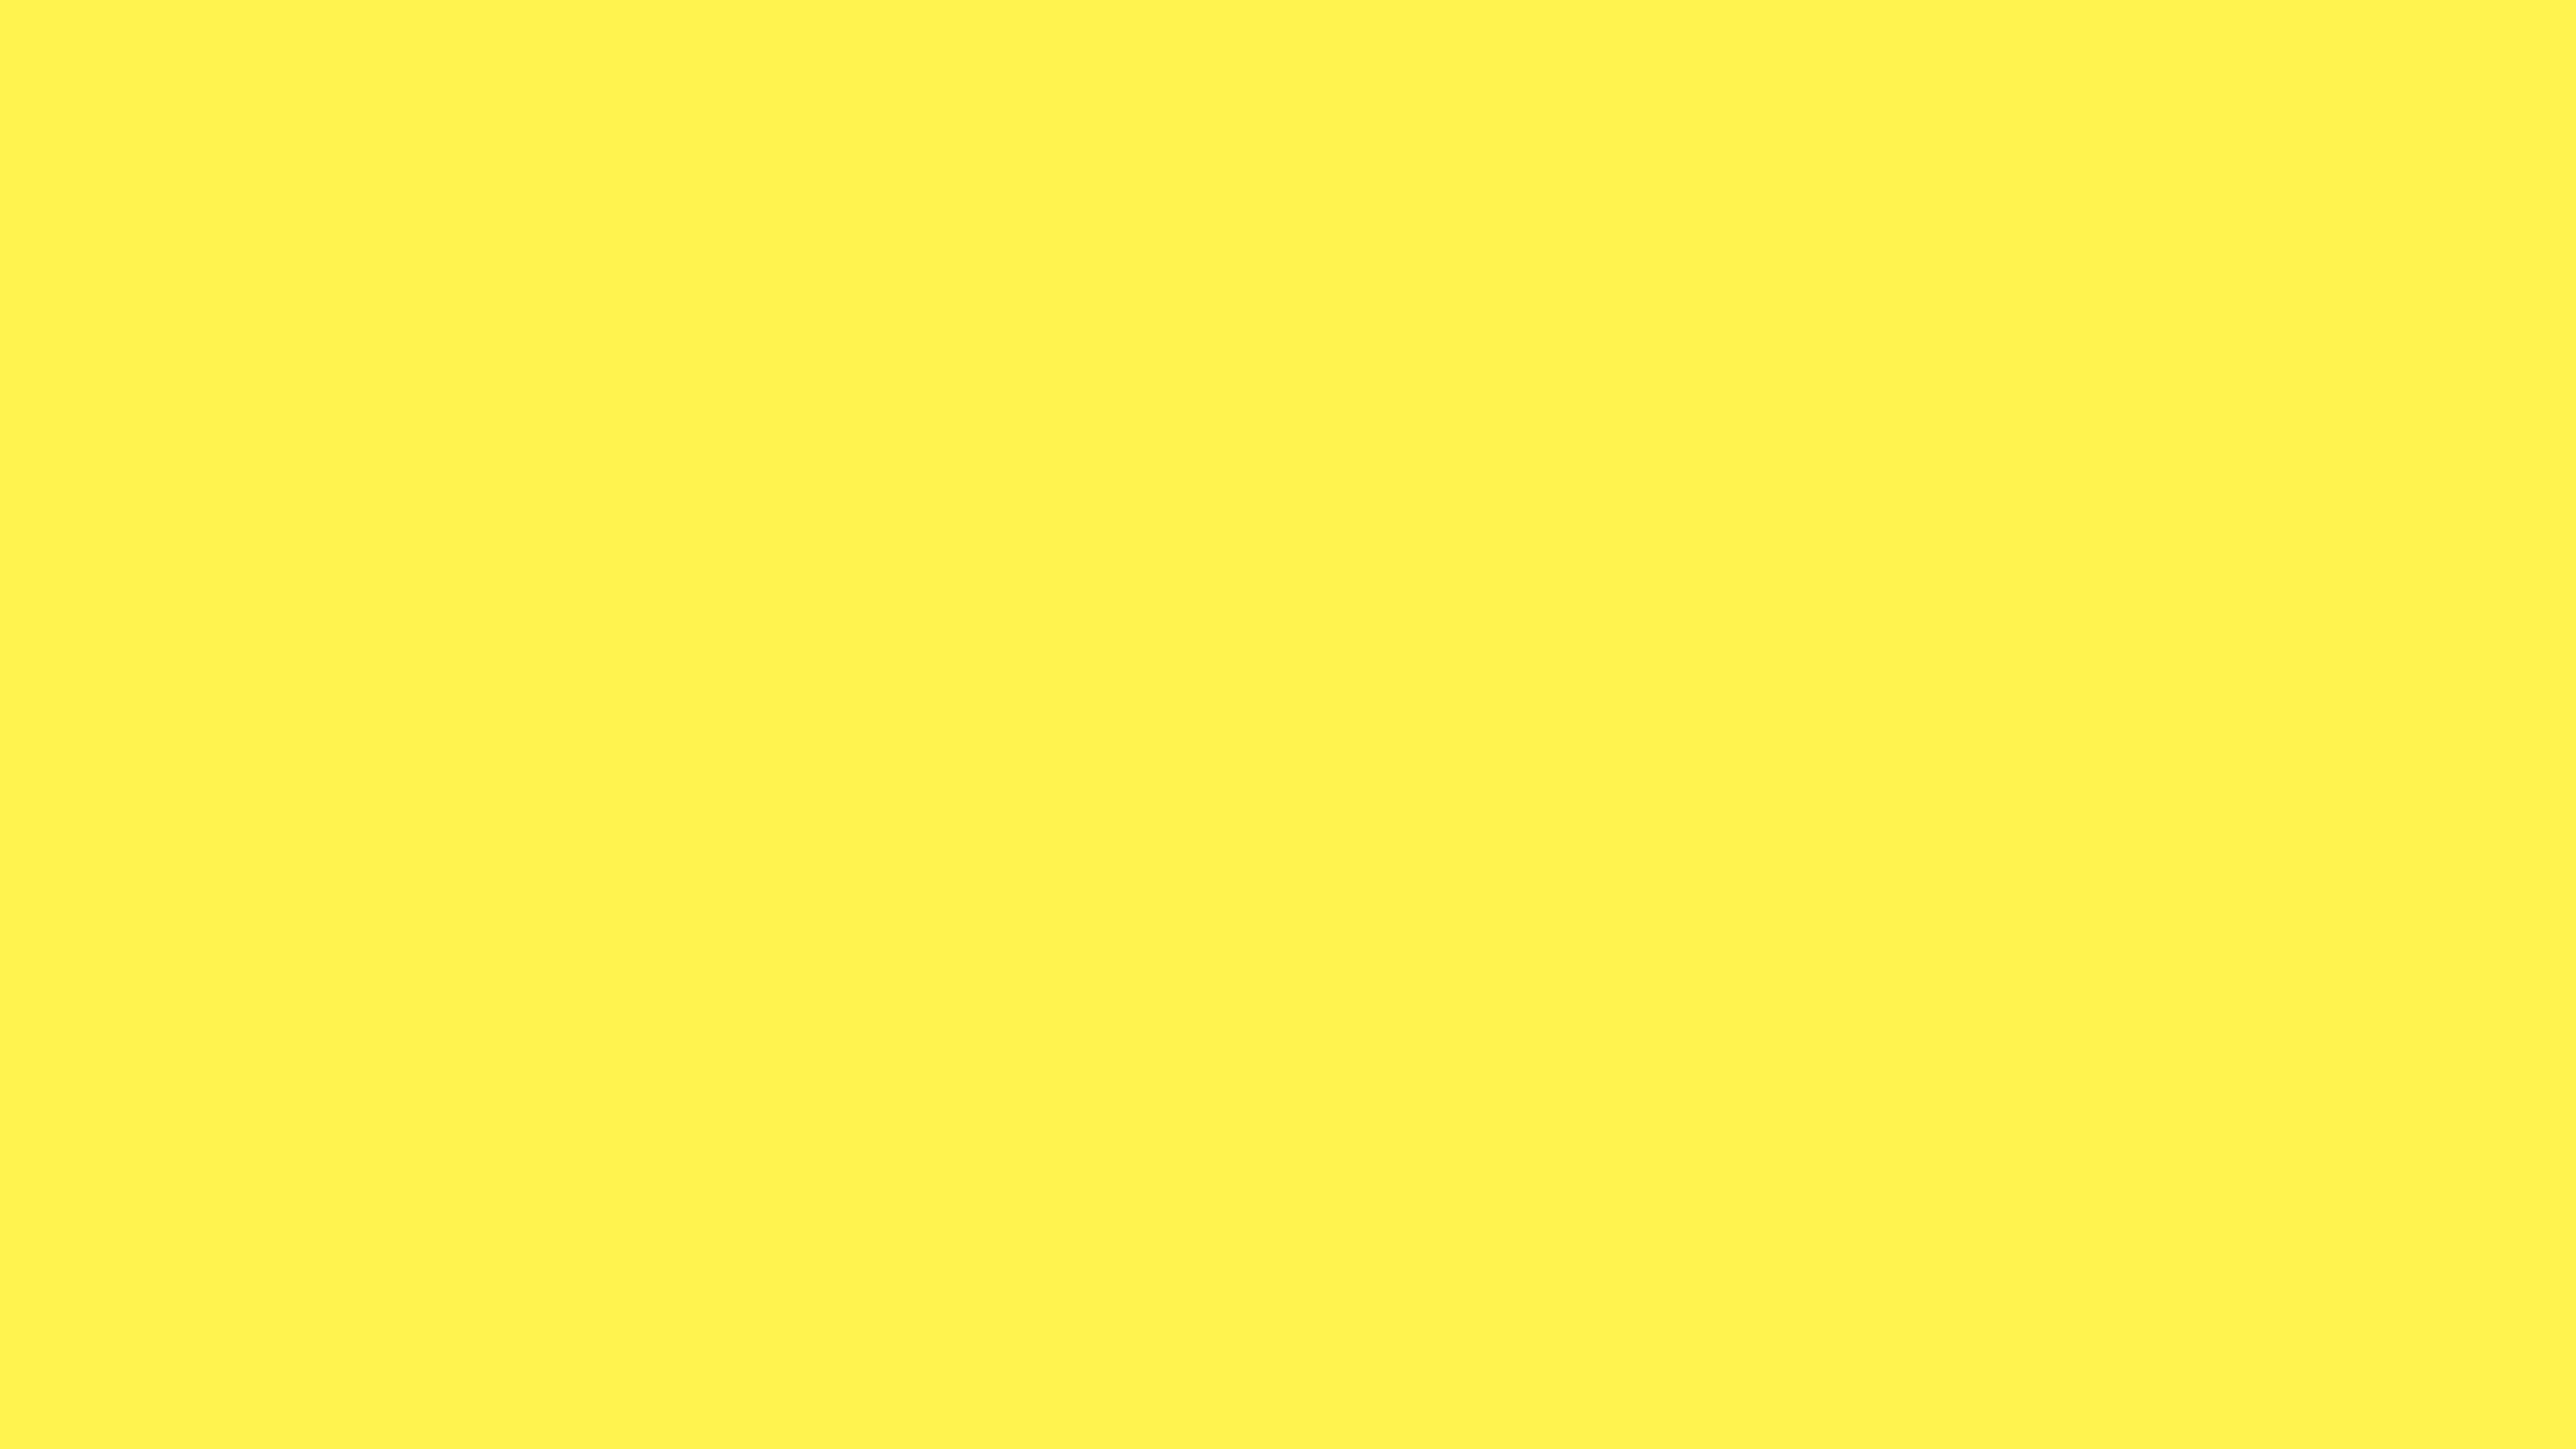 5120x2880 Lemon Yellow Solid Color Background